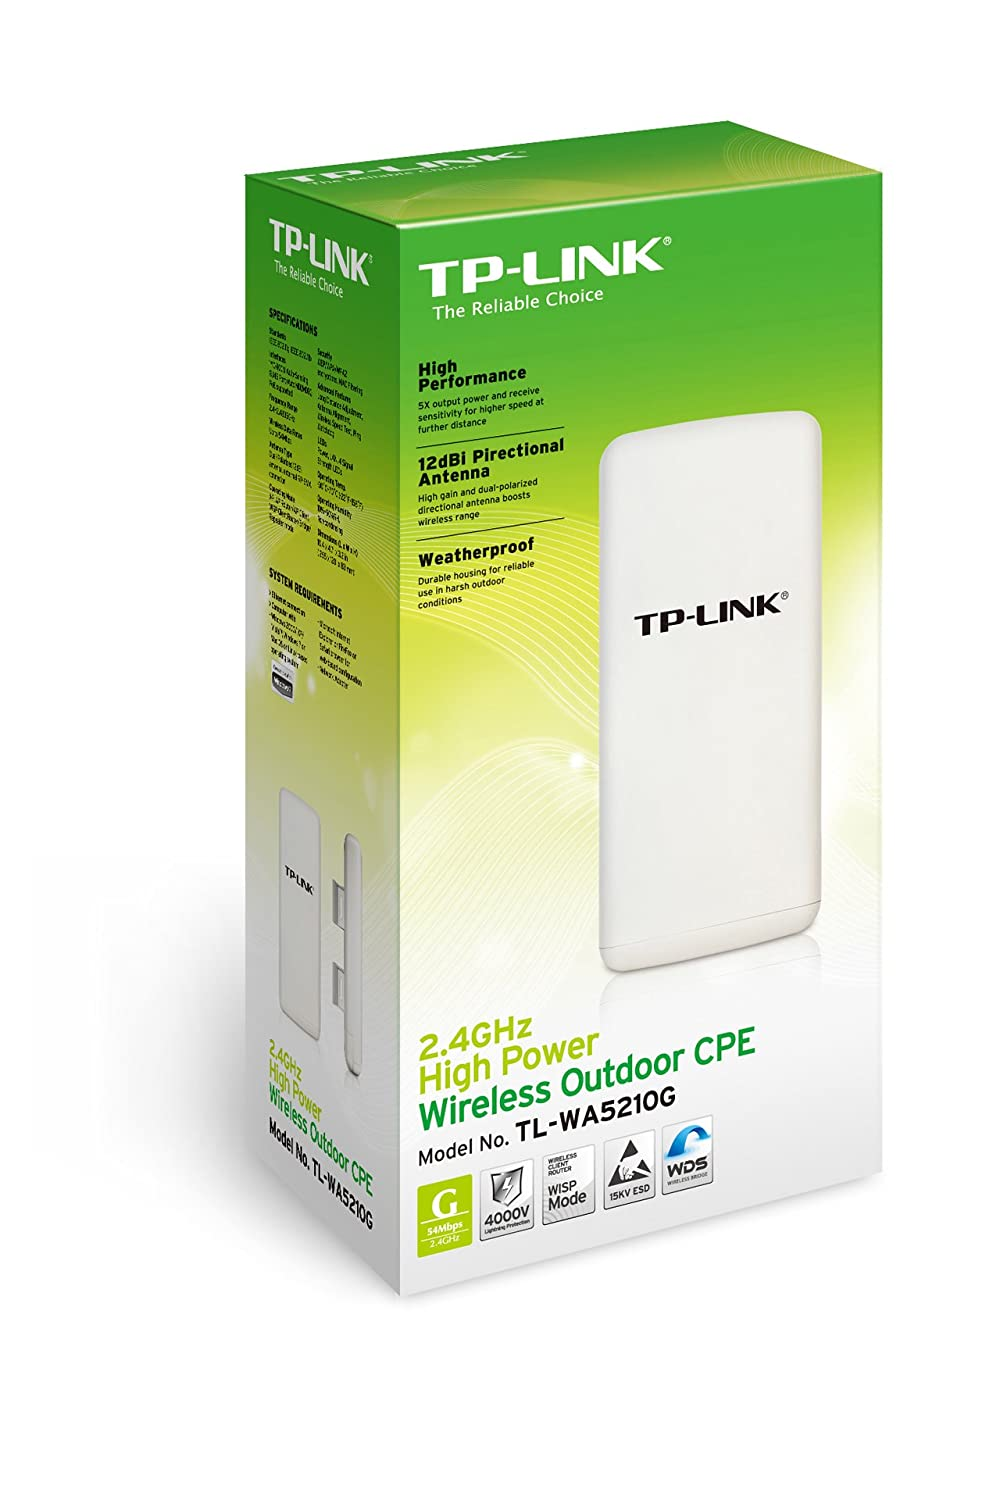 TP-Link TL-WA5210G 2.4GHz High Power Wireless Outdoor CPE (White